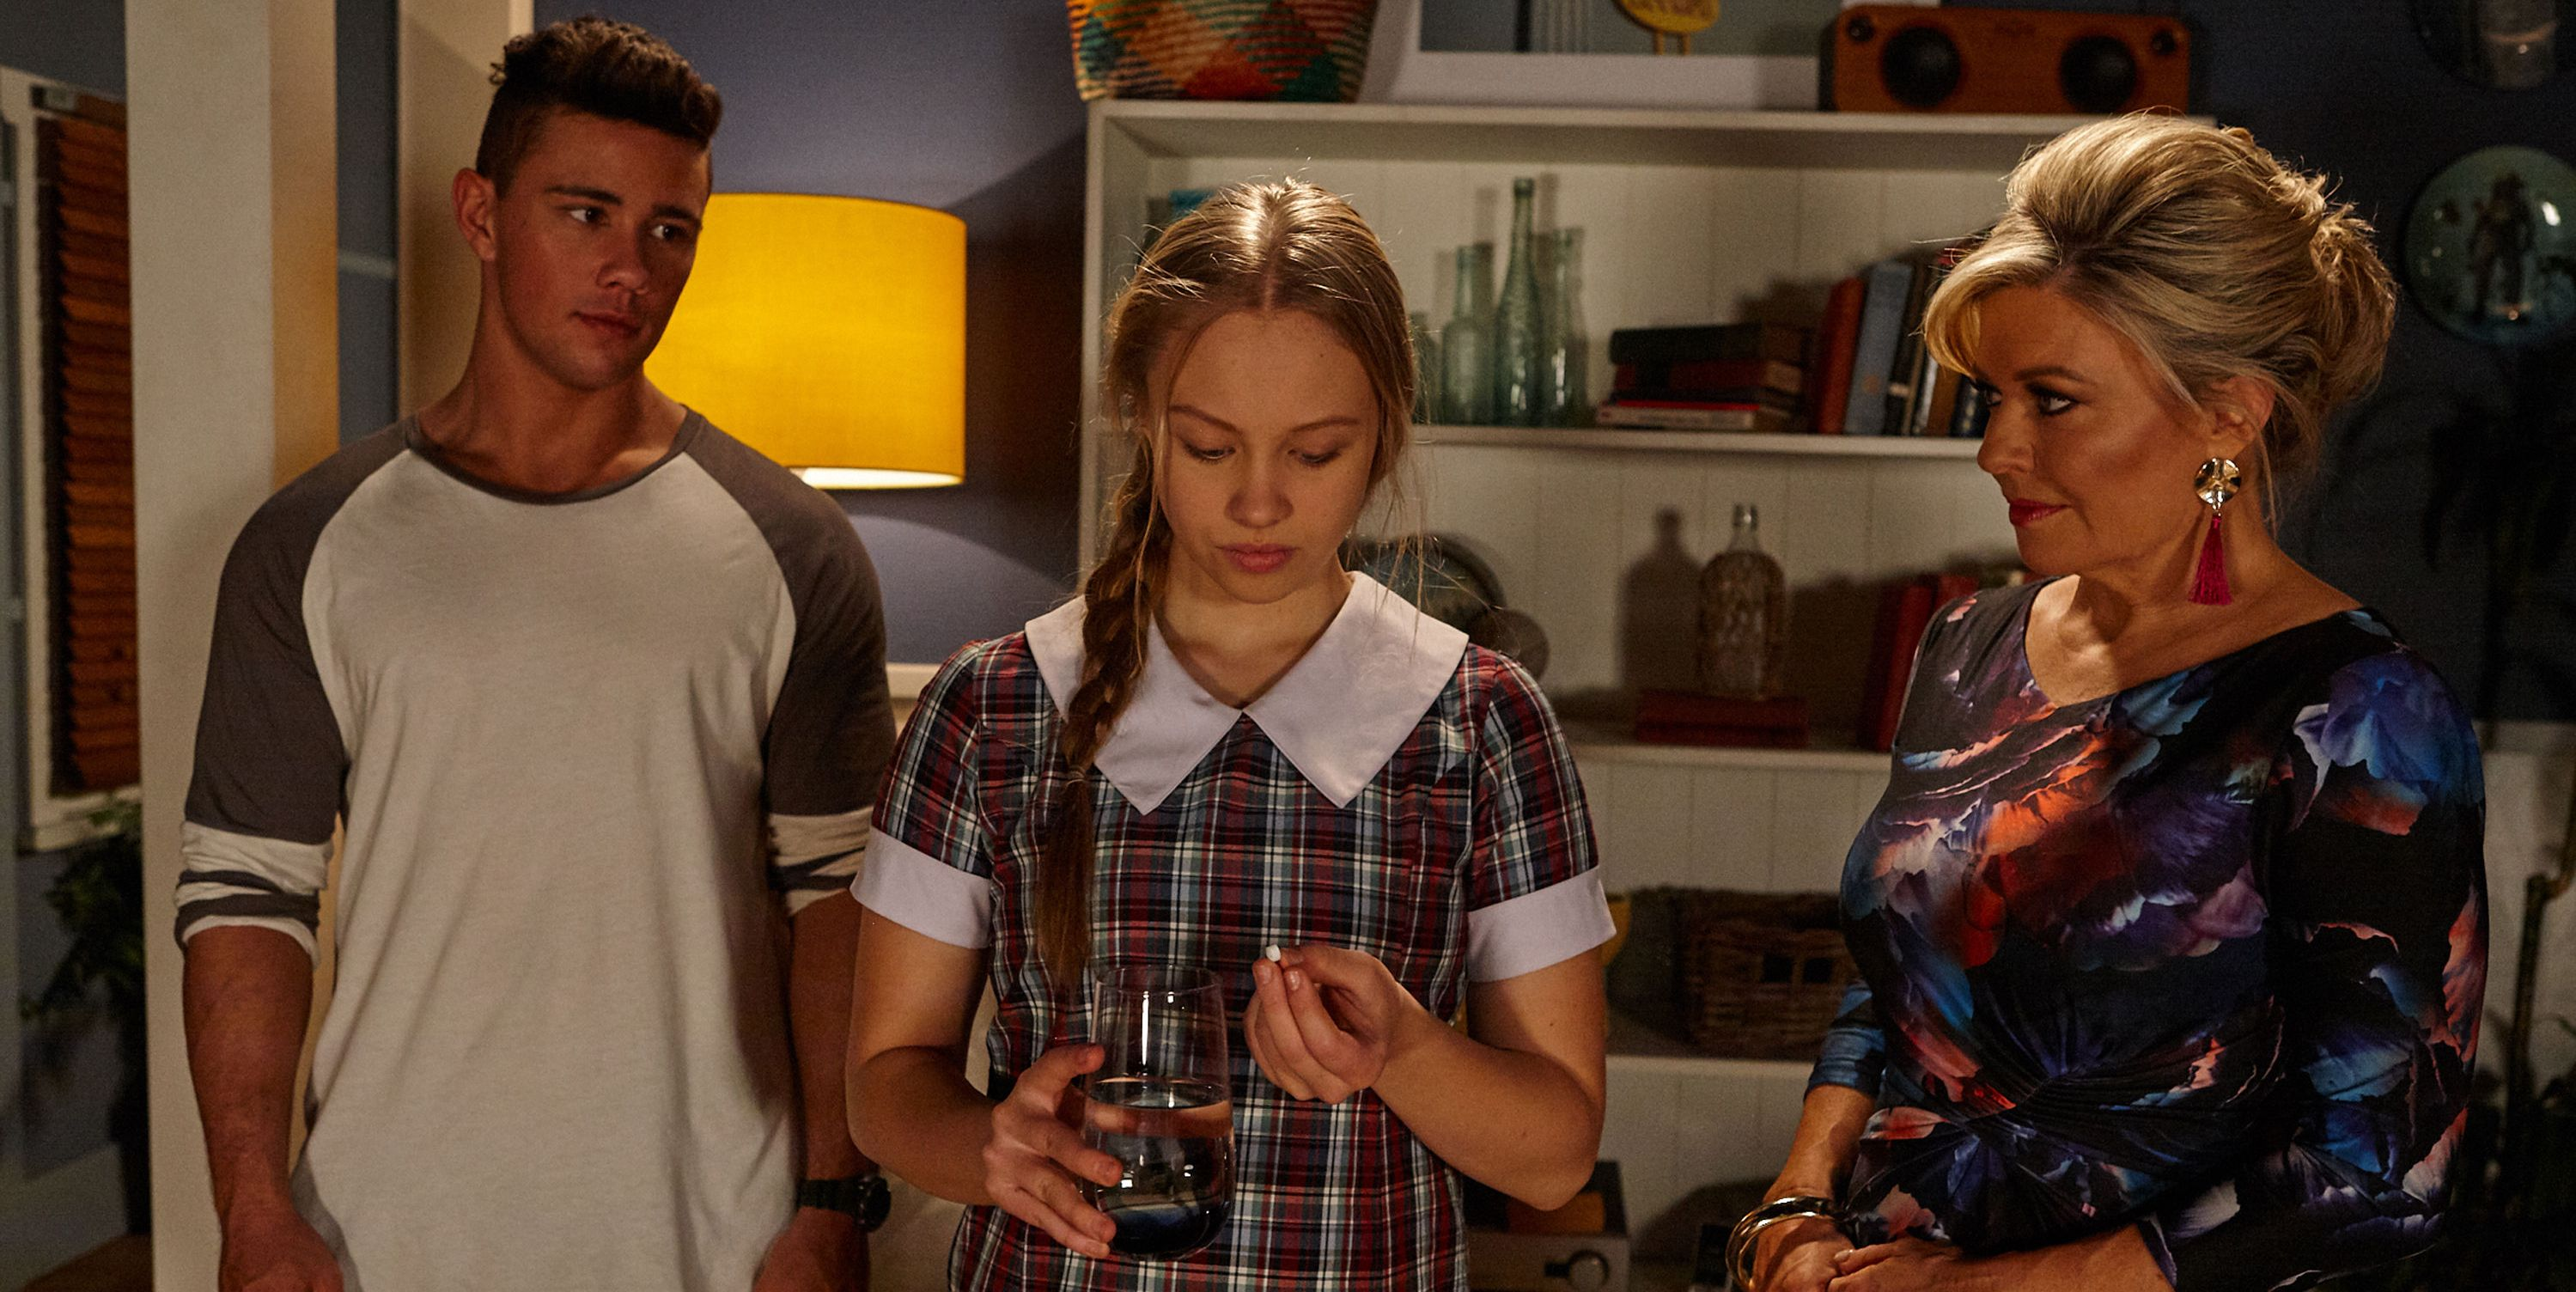 Raffy Morrison is encouraged to take medication by Marilyn Chambers in Home and Away